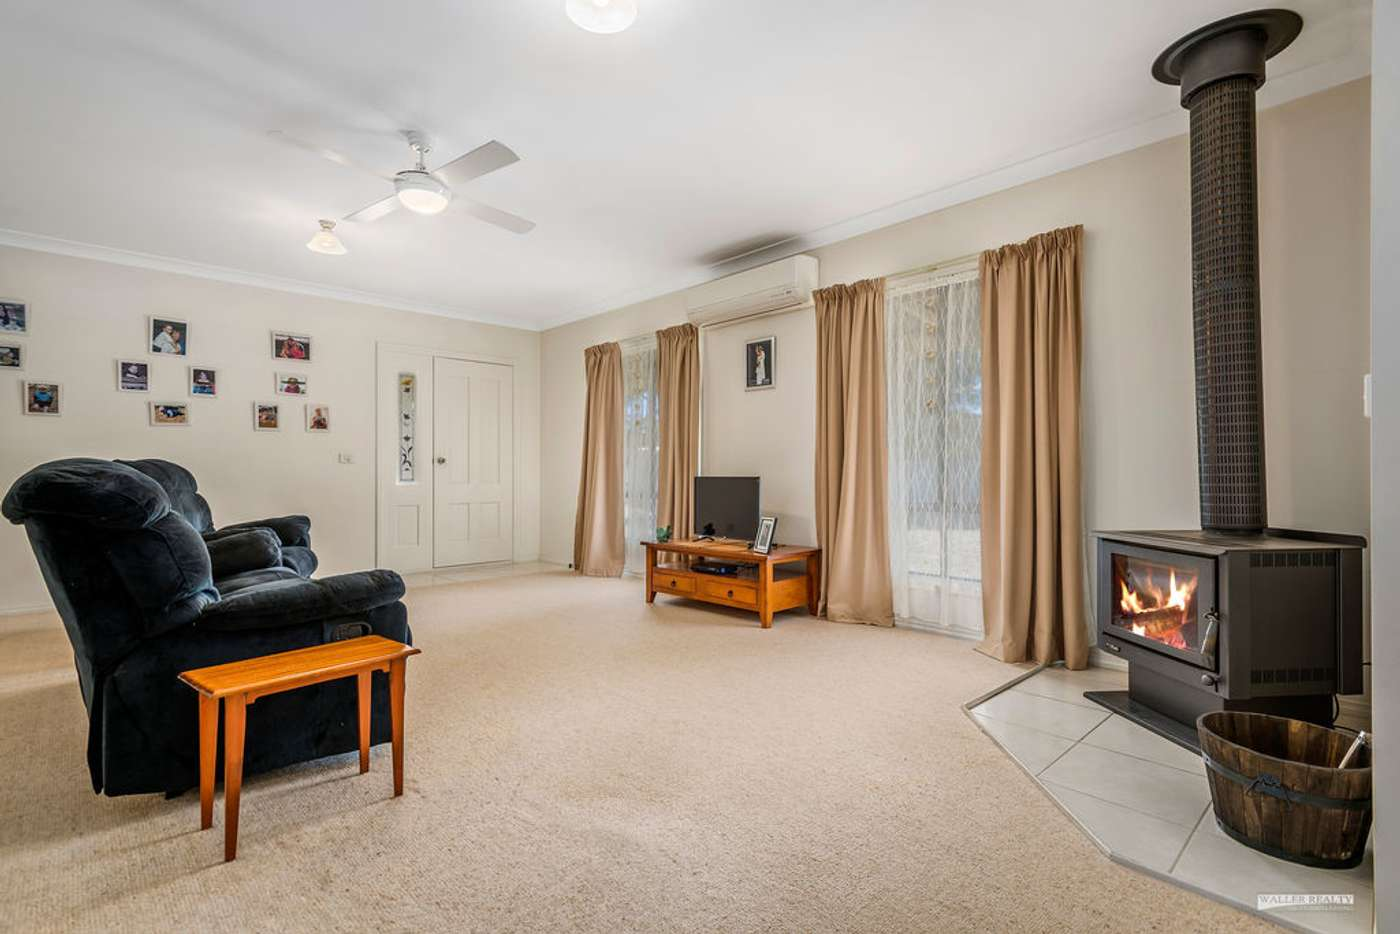 Fifth view of Homely house listing, 27a Lowther Street, Maldon VIC 3463